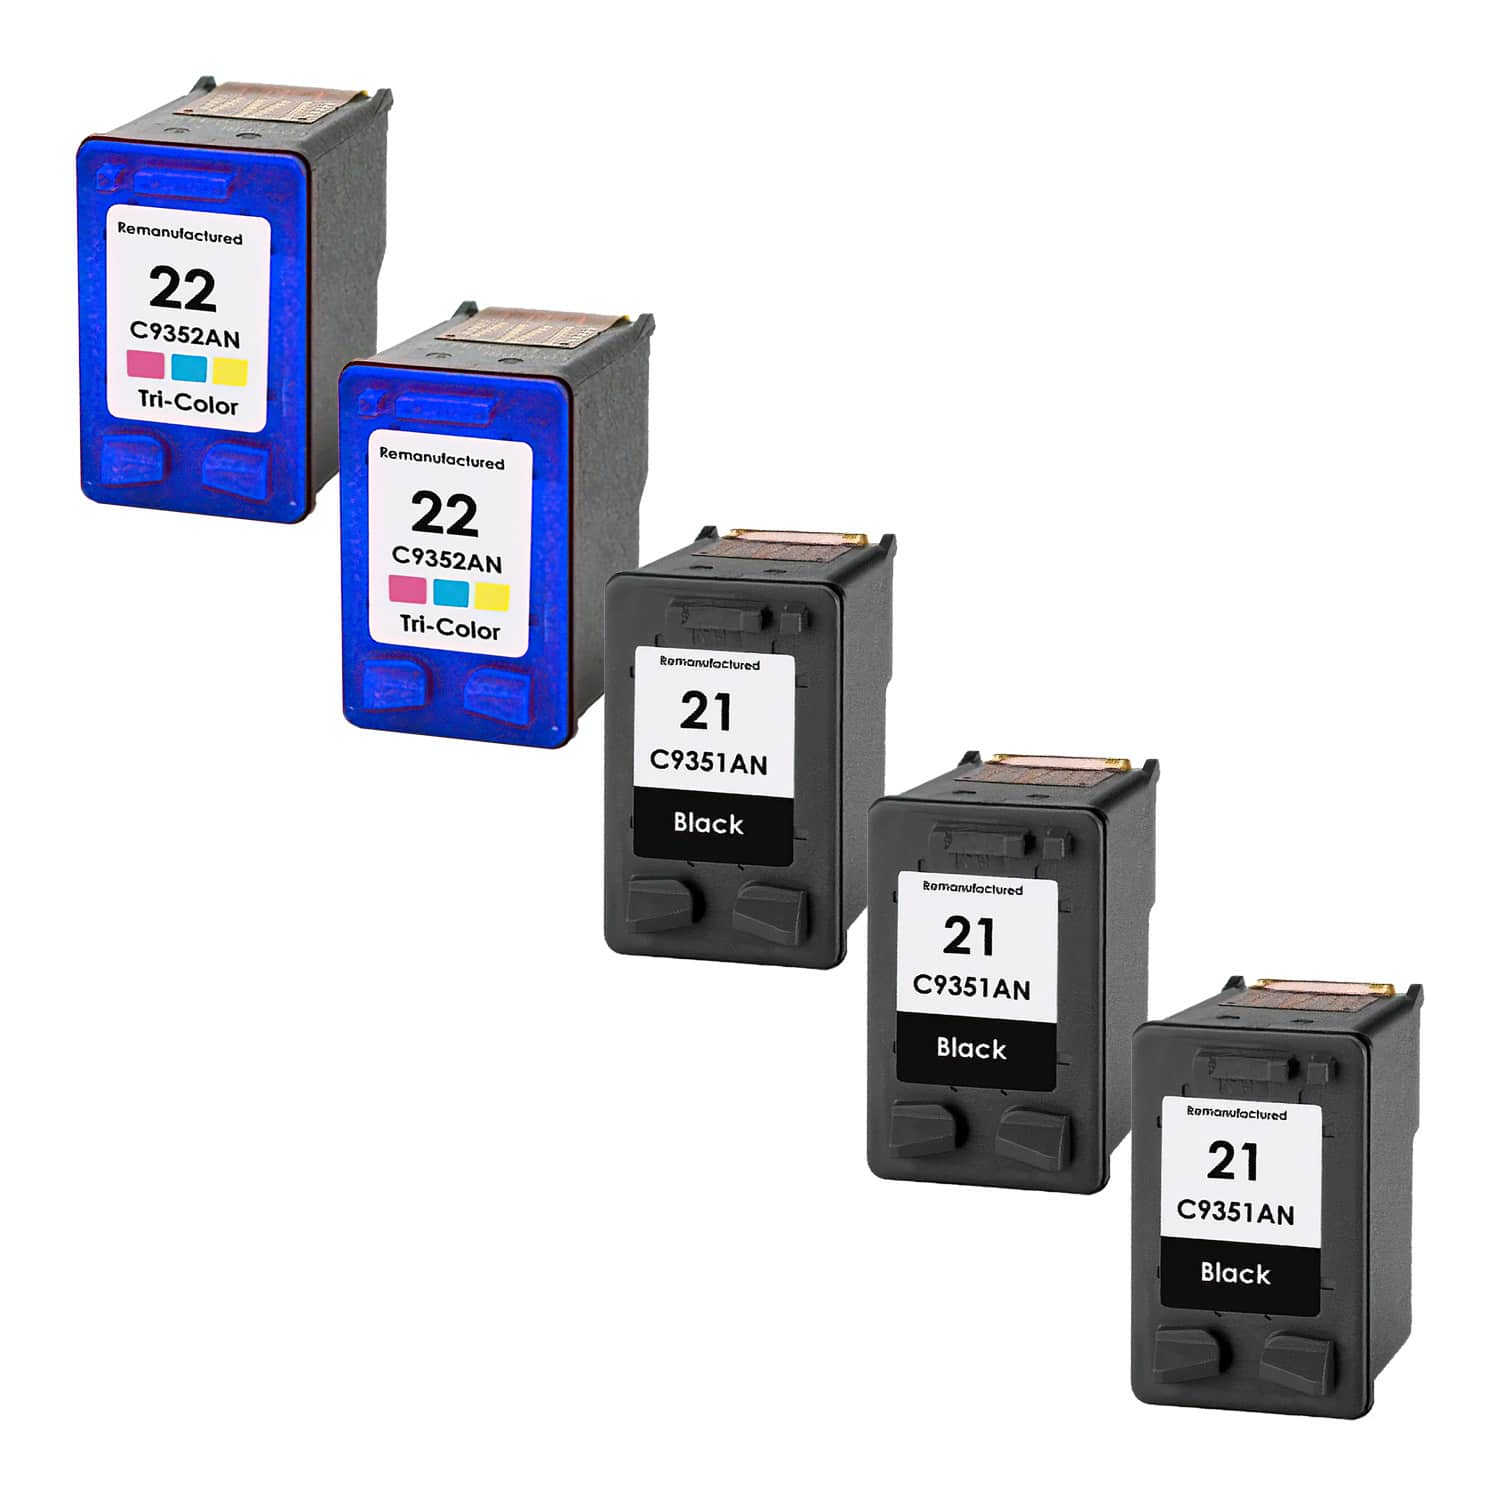 Remanufactured HP 22-21 Inkjet Pack - 5 Cartridges